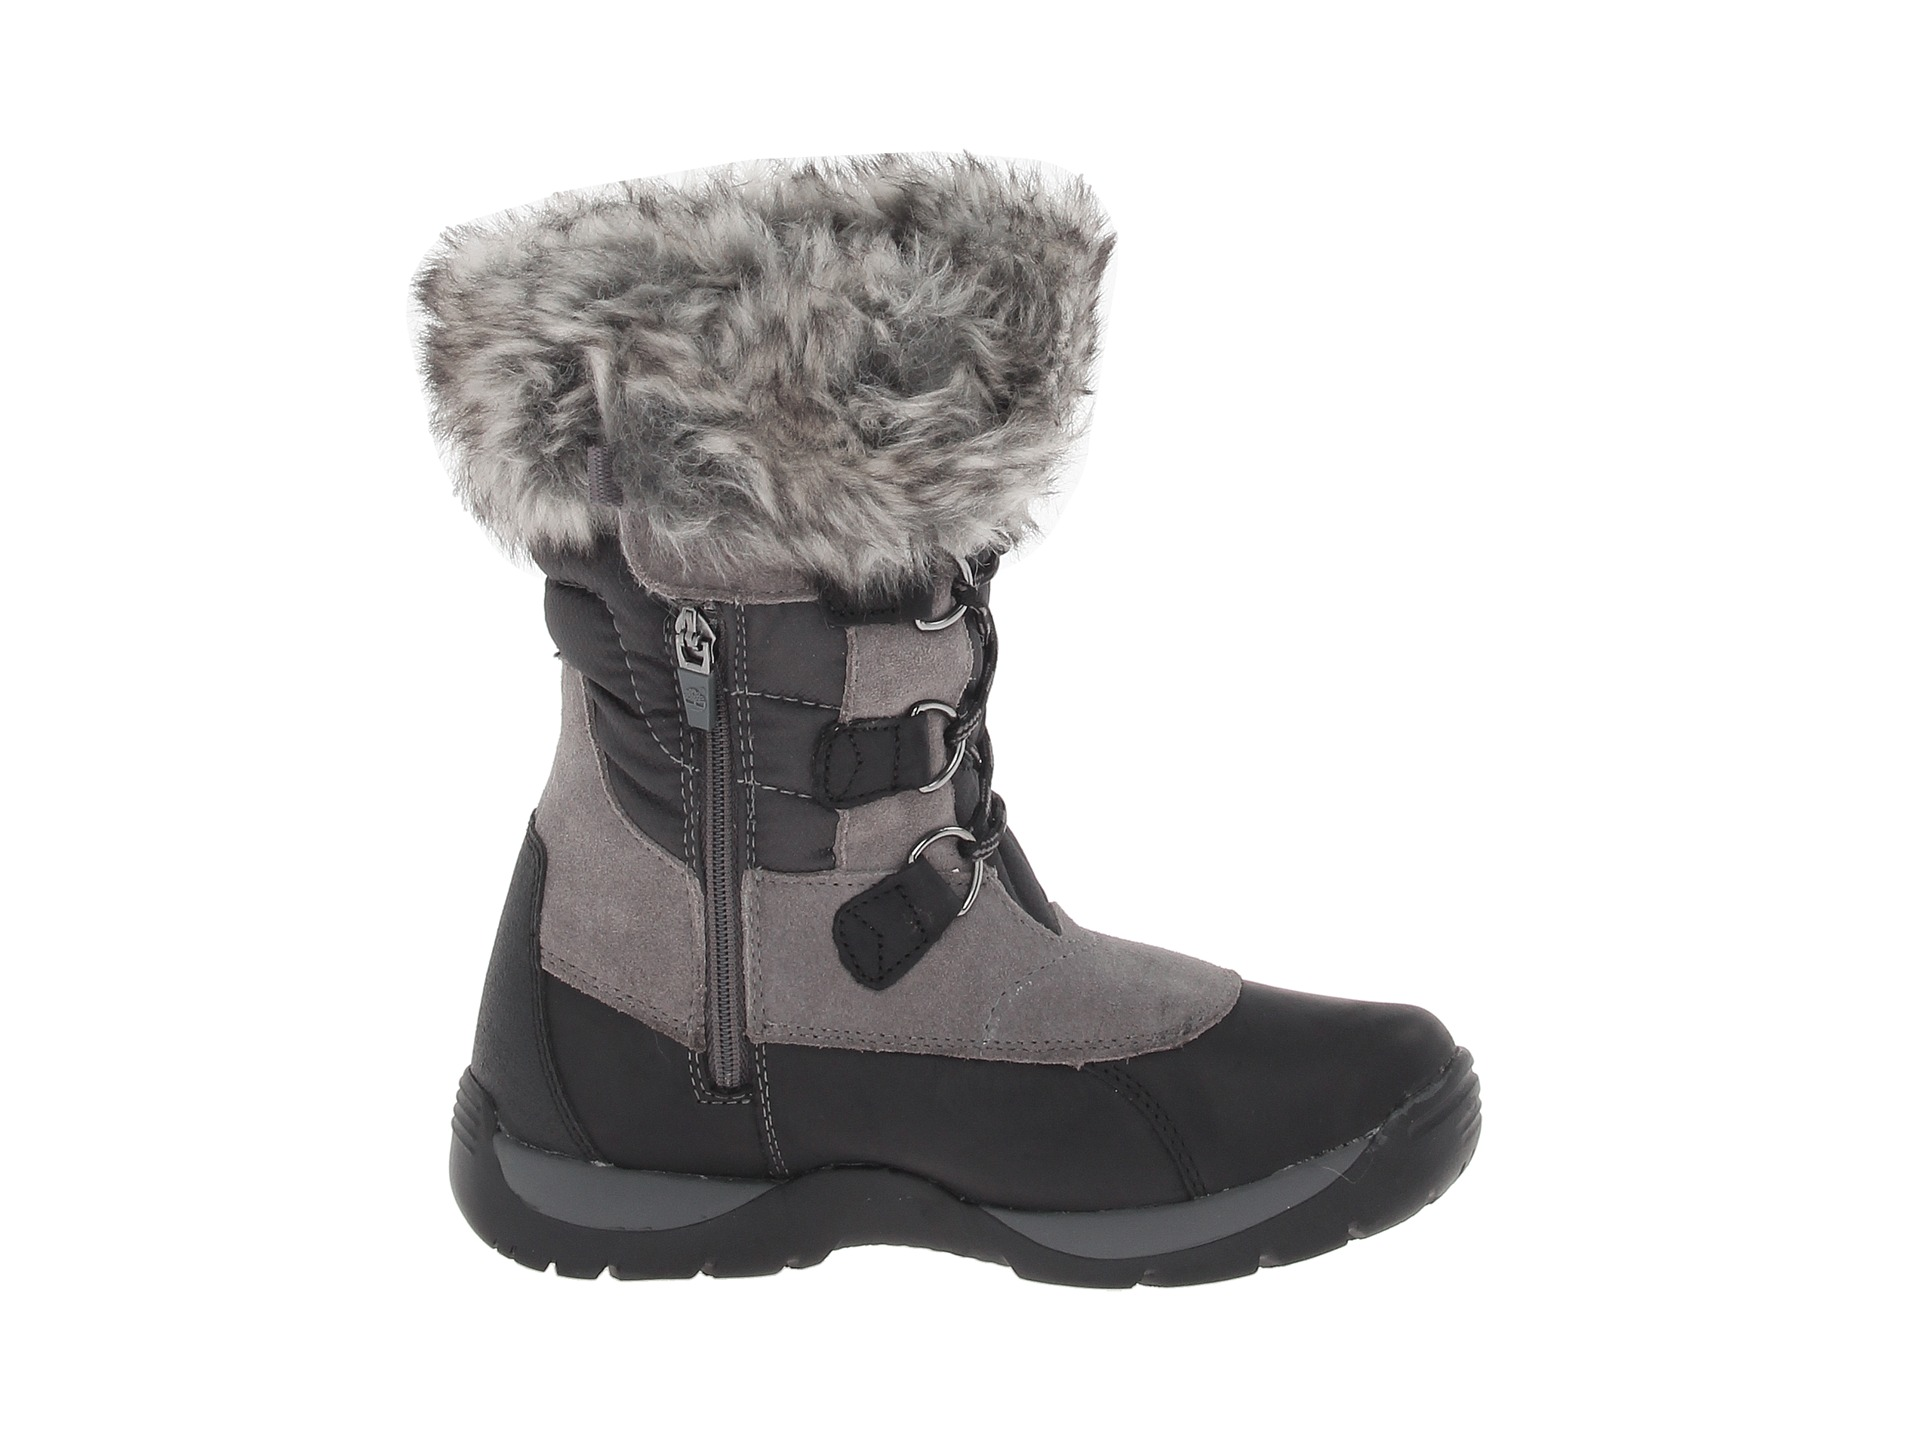 Timberland Youth Blizzard Bliss Waterproof Snow Boots MIT  MIT